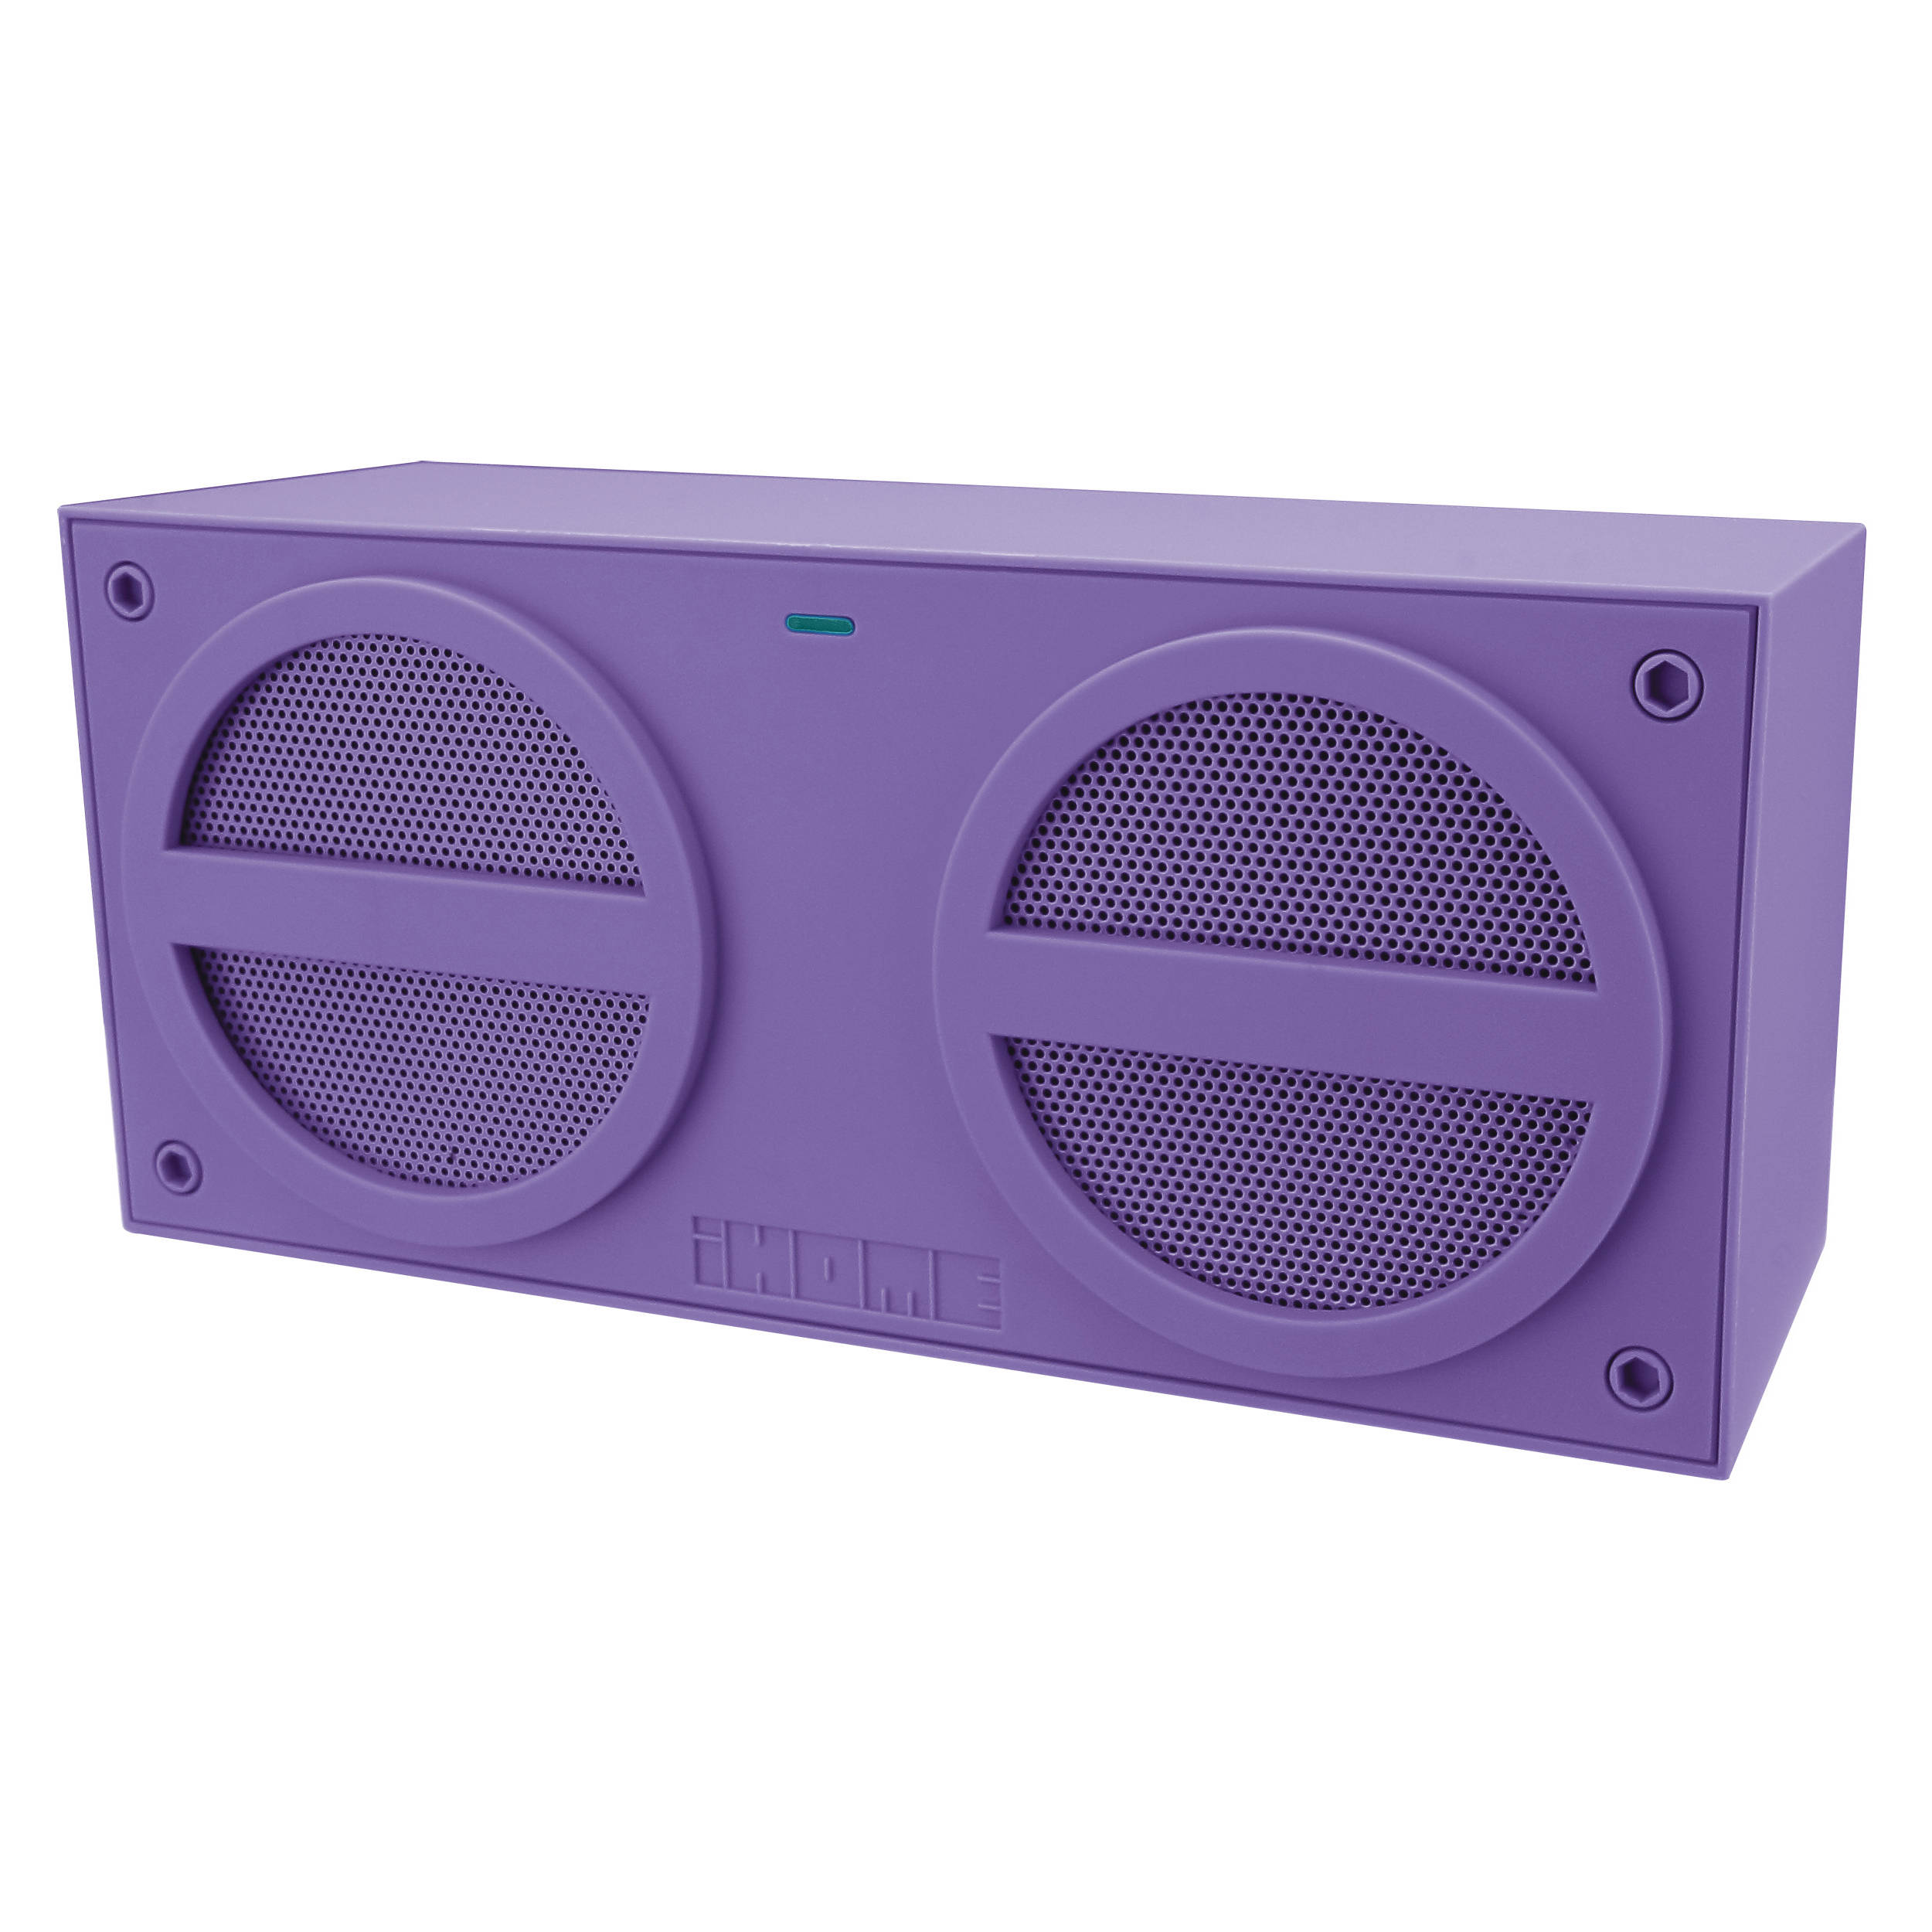 Ihome bluetooth rechargeable stereo mini speaker in for Ihome speaker